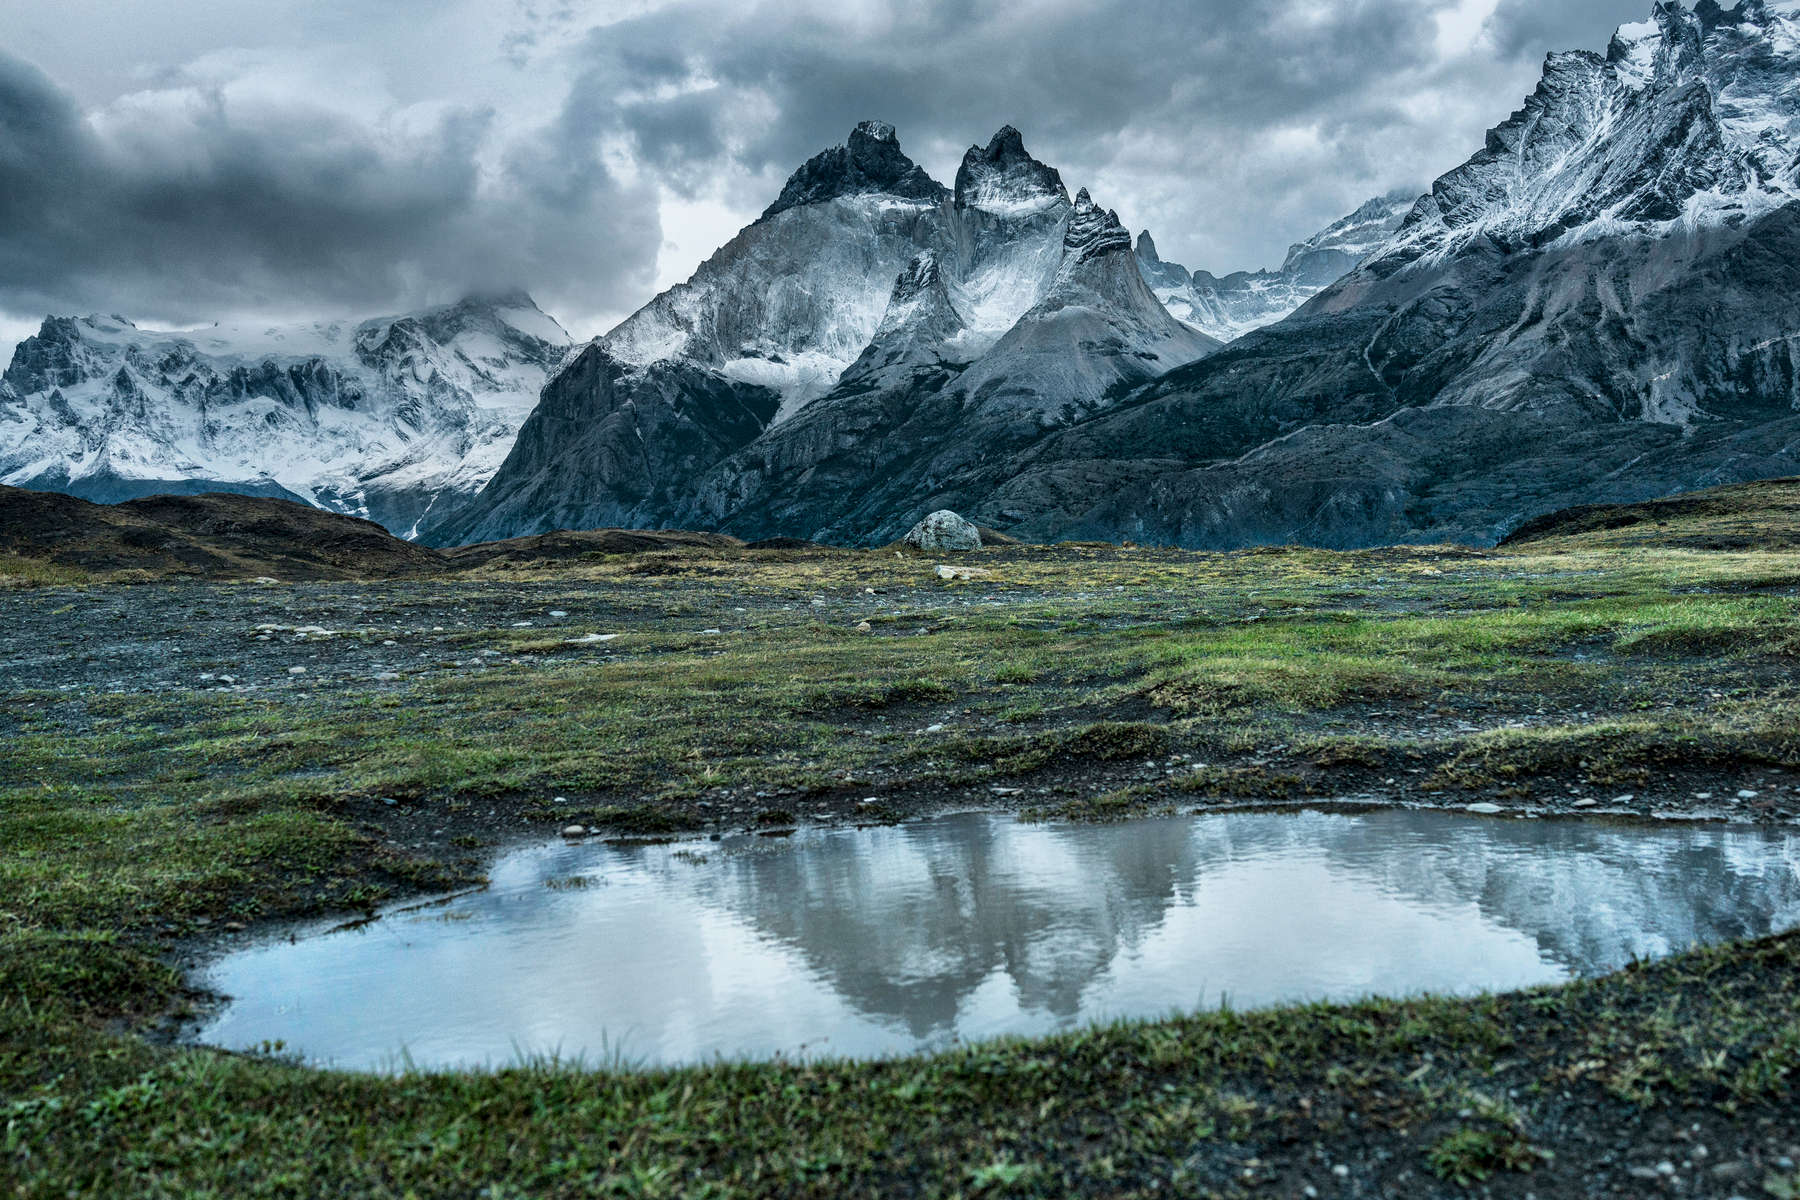 TORRE DEL PAINE, CHILE - MARCH 9: Adult (Photograph by Benjamin Lowy)